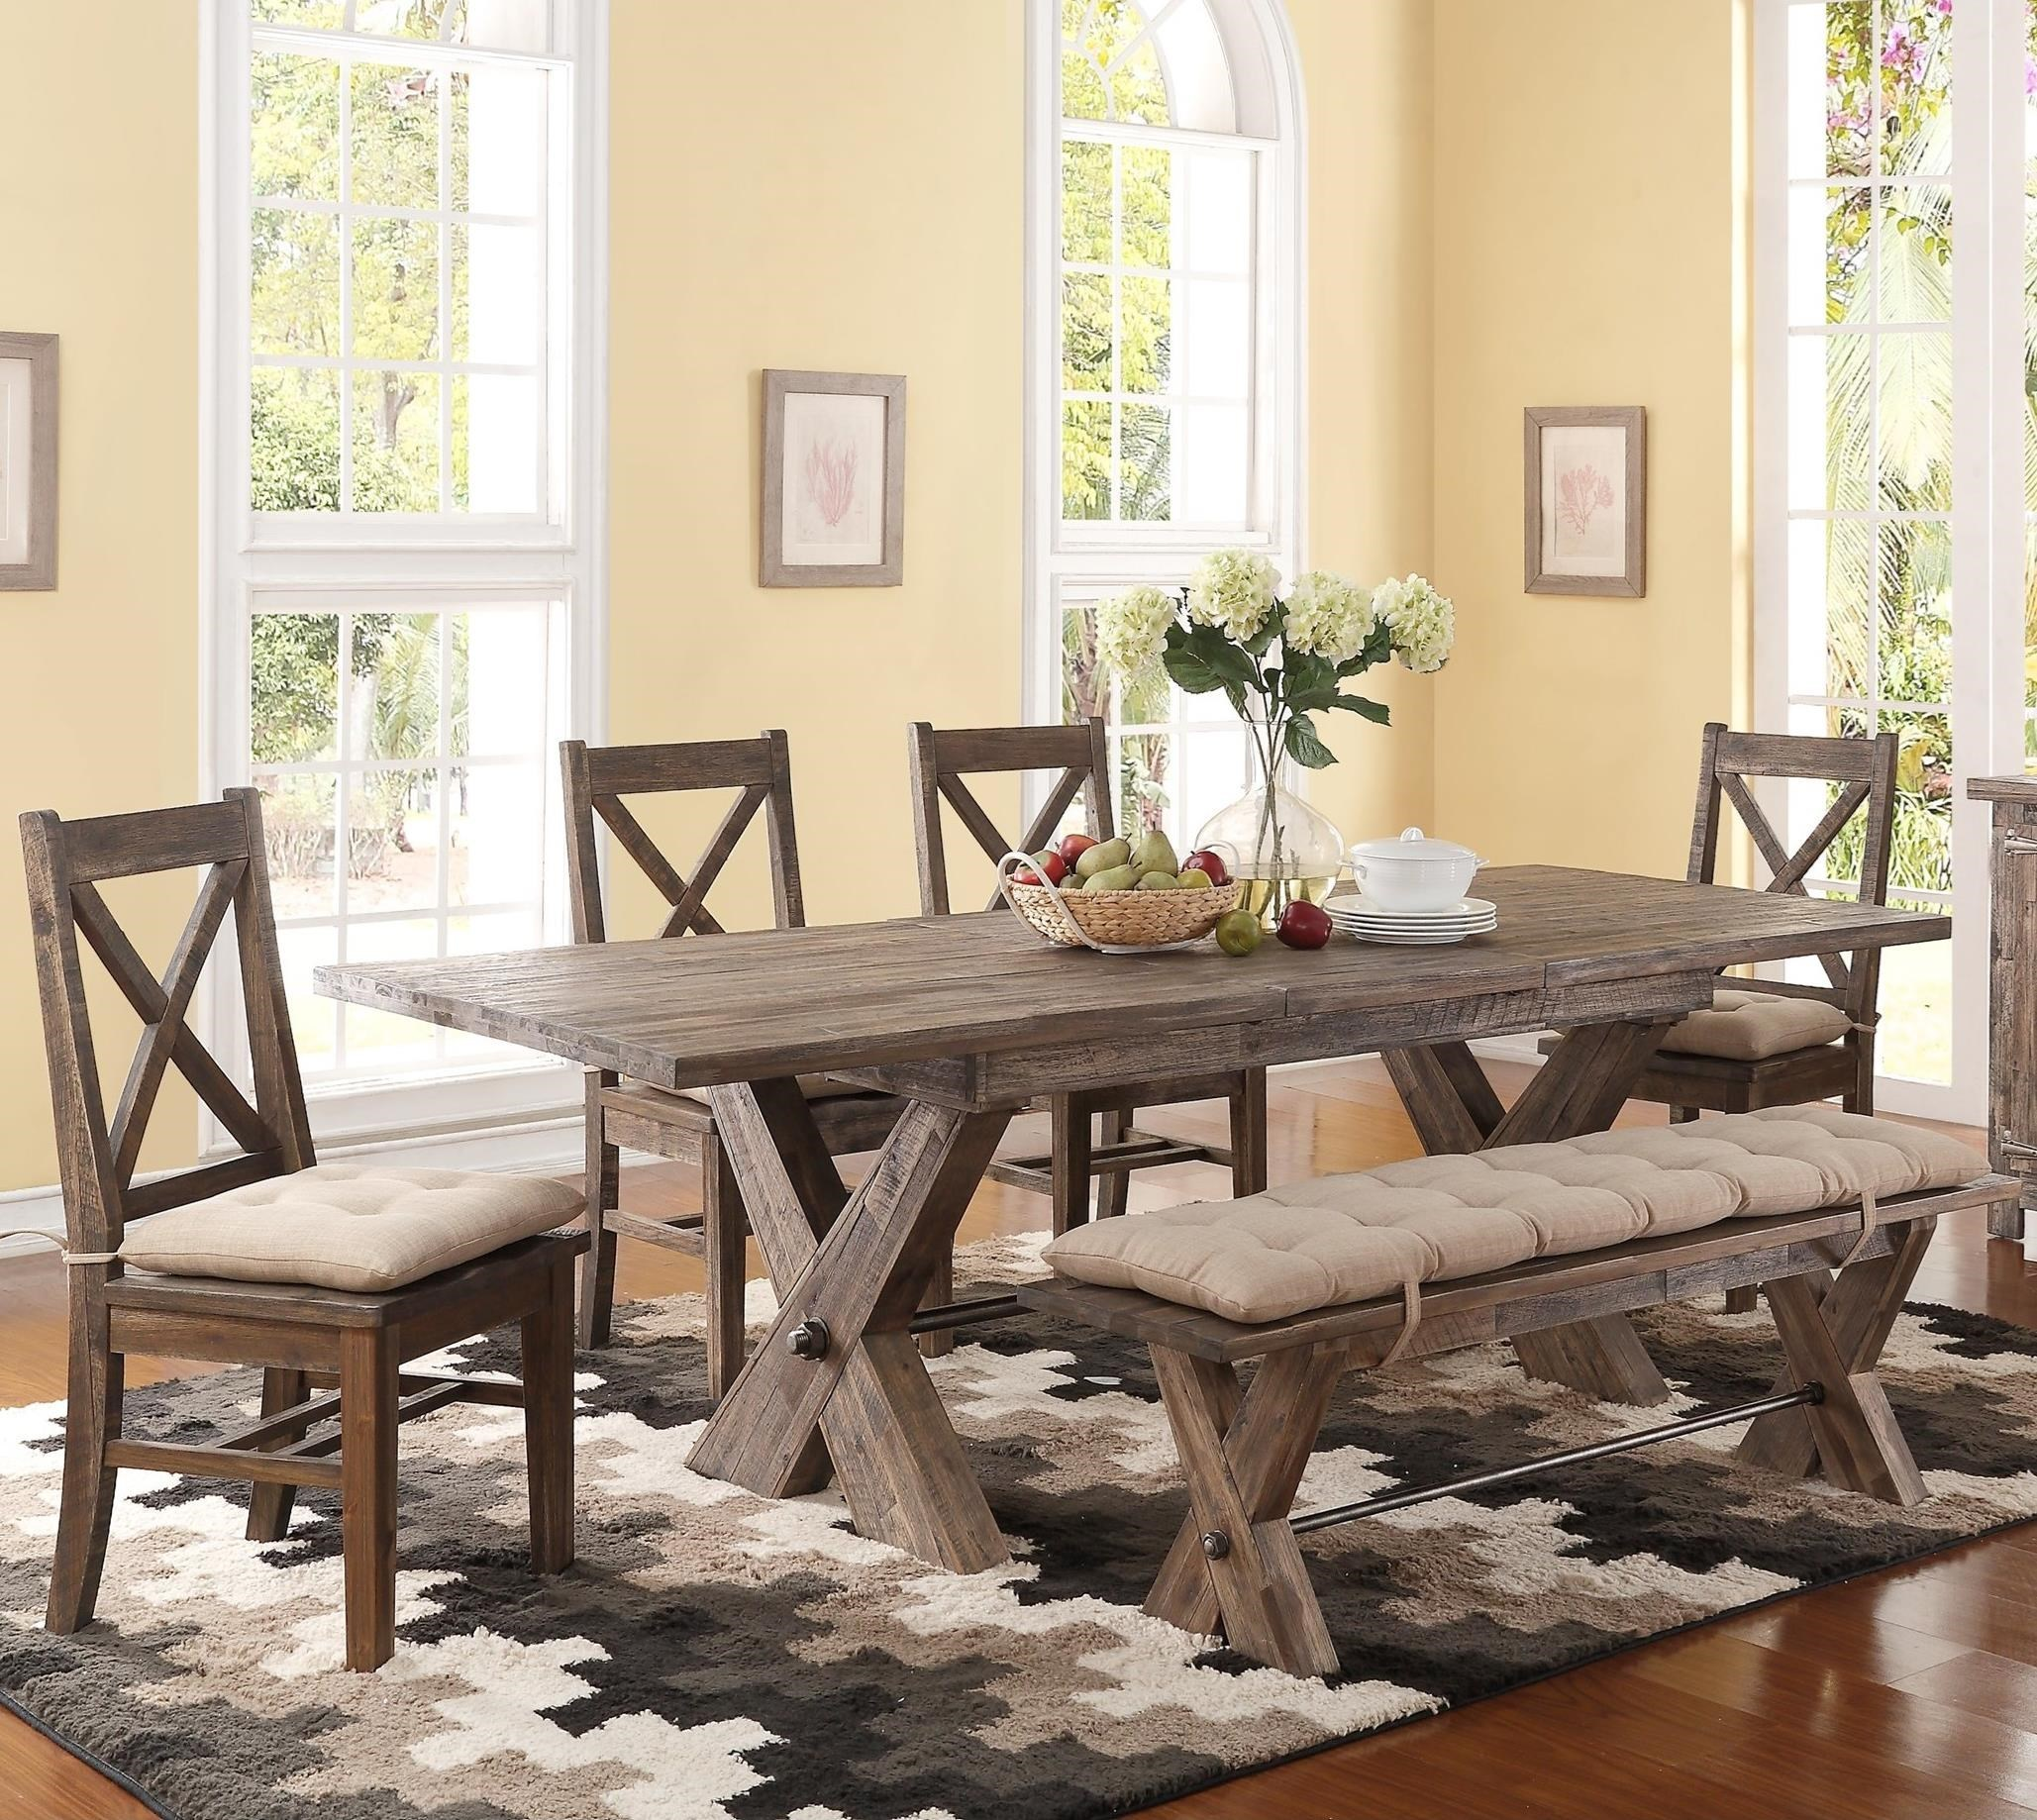 New Classic Tuscany Park 6 Piece Trestle Dining Table and Cushioned